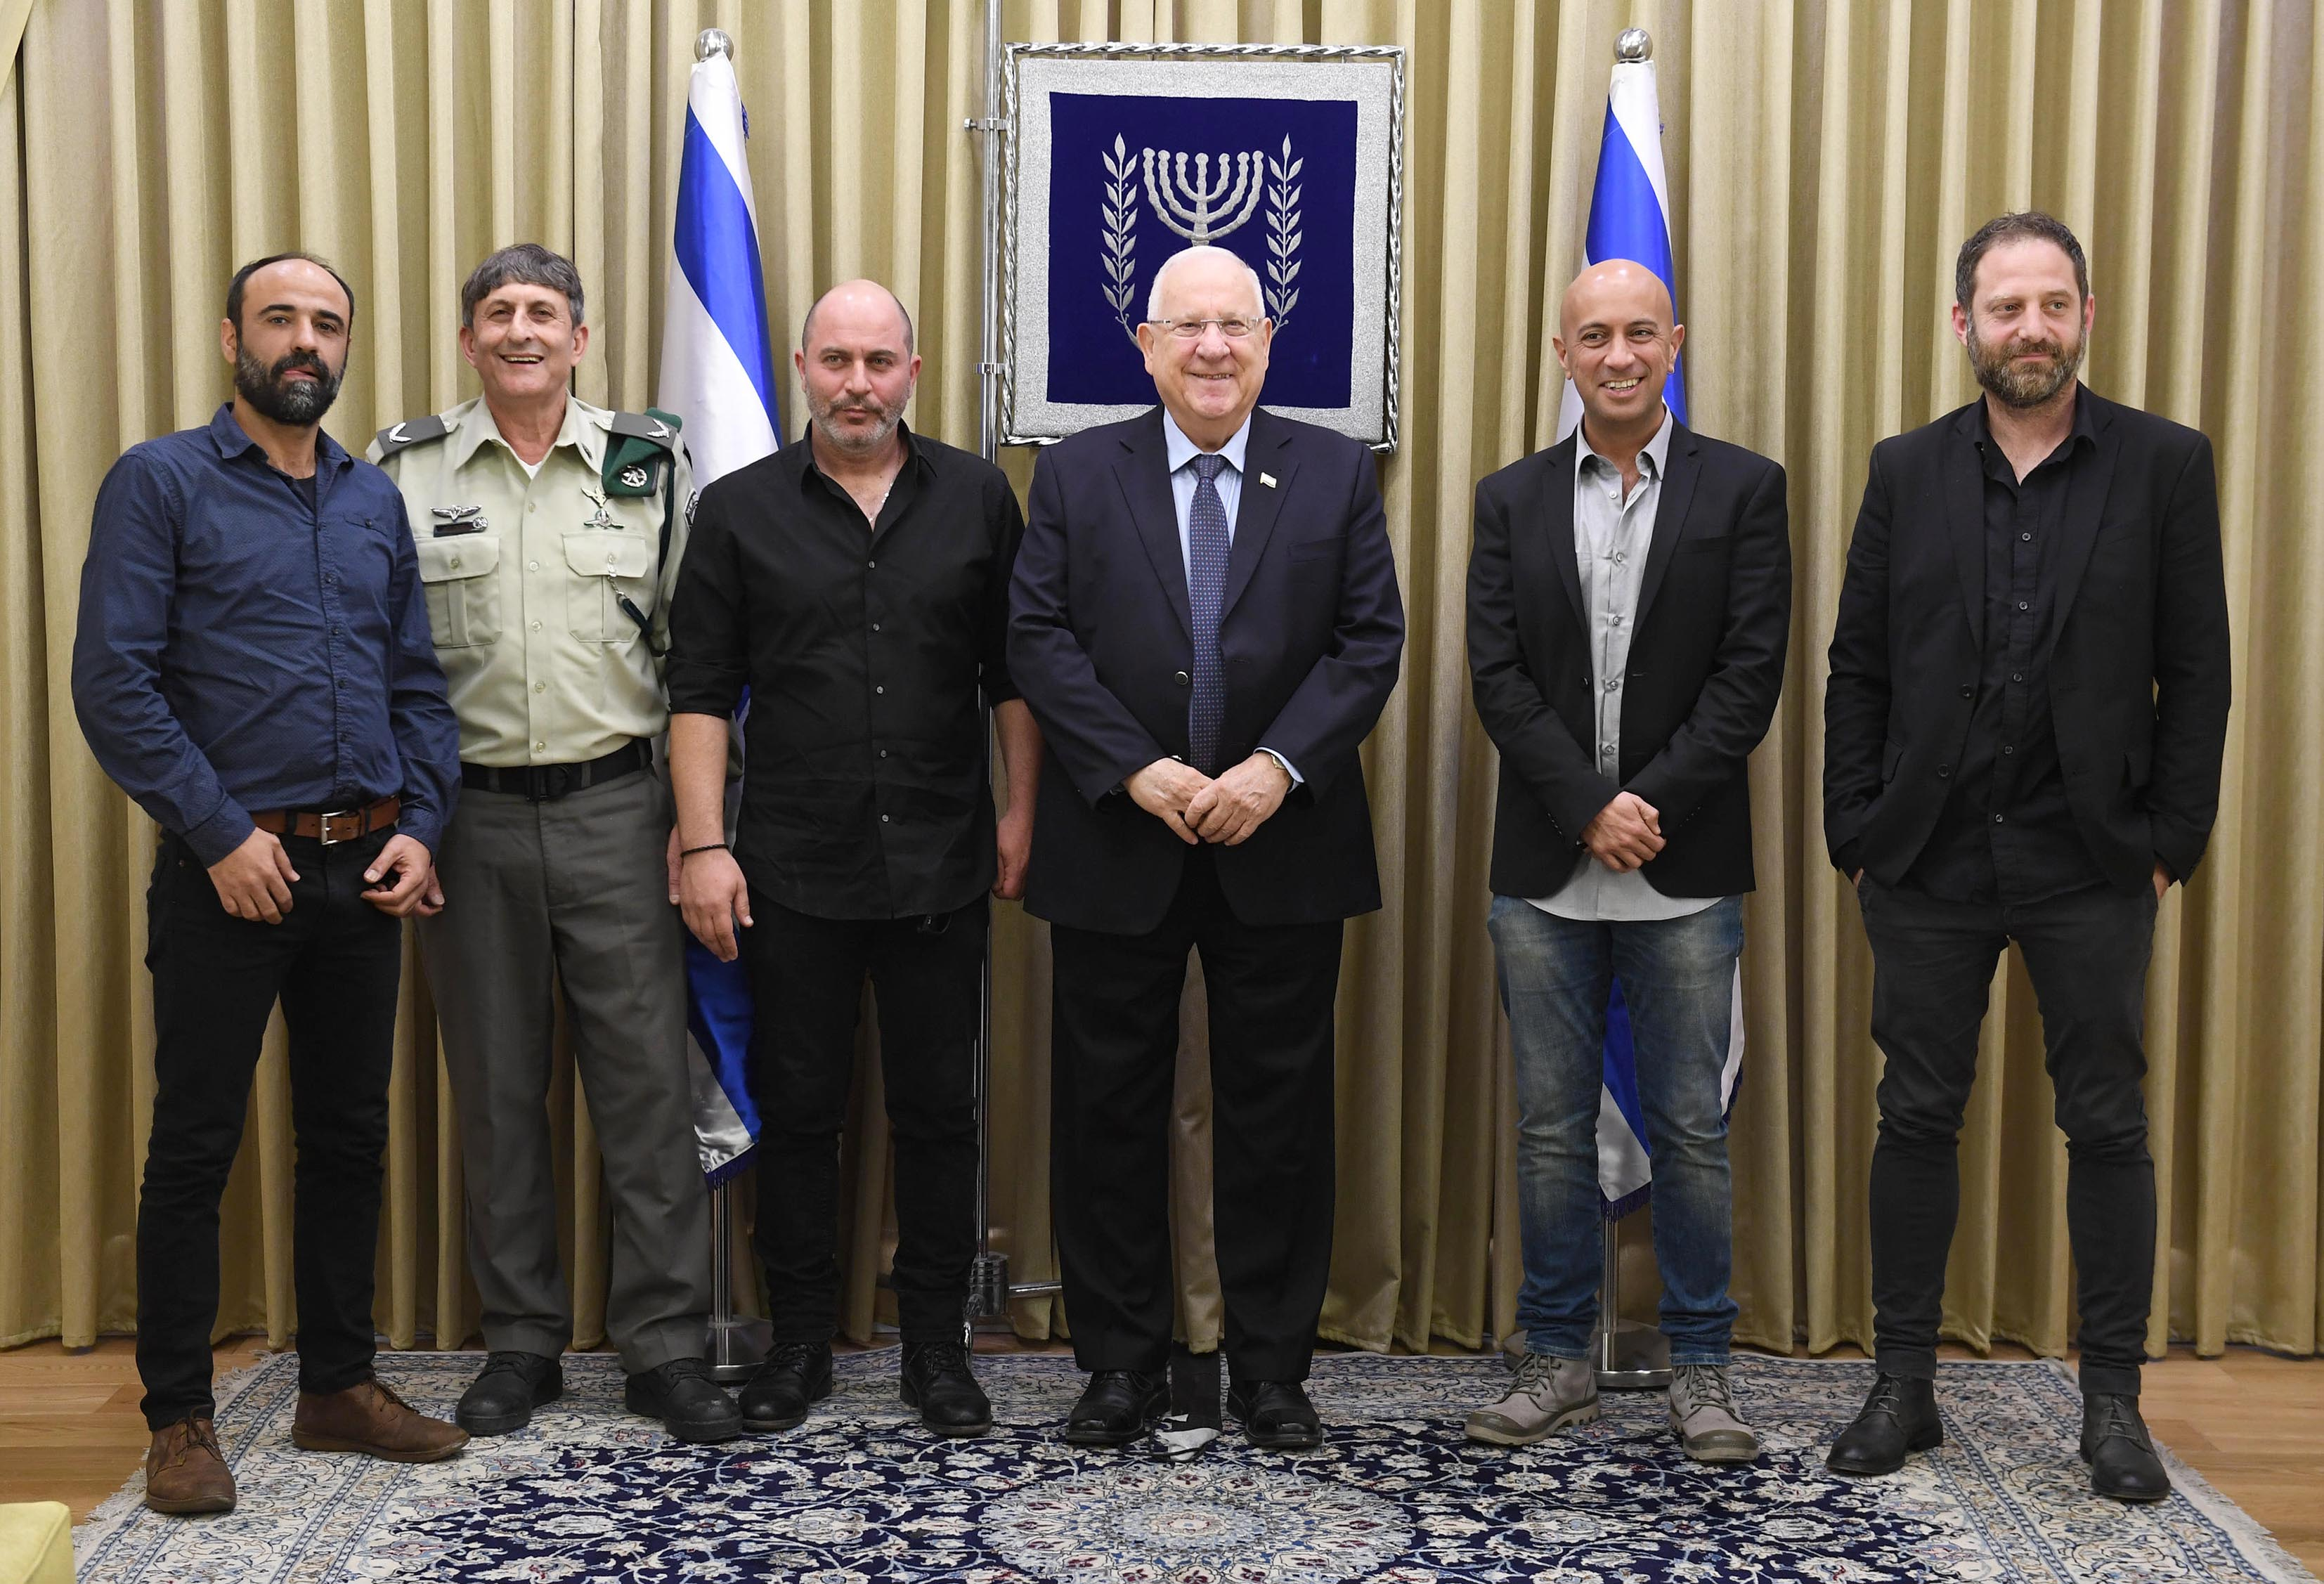 File:Reuven Rivlin with the personal of the Israeli